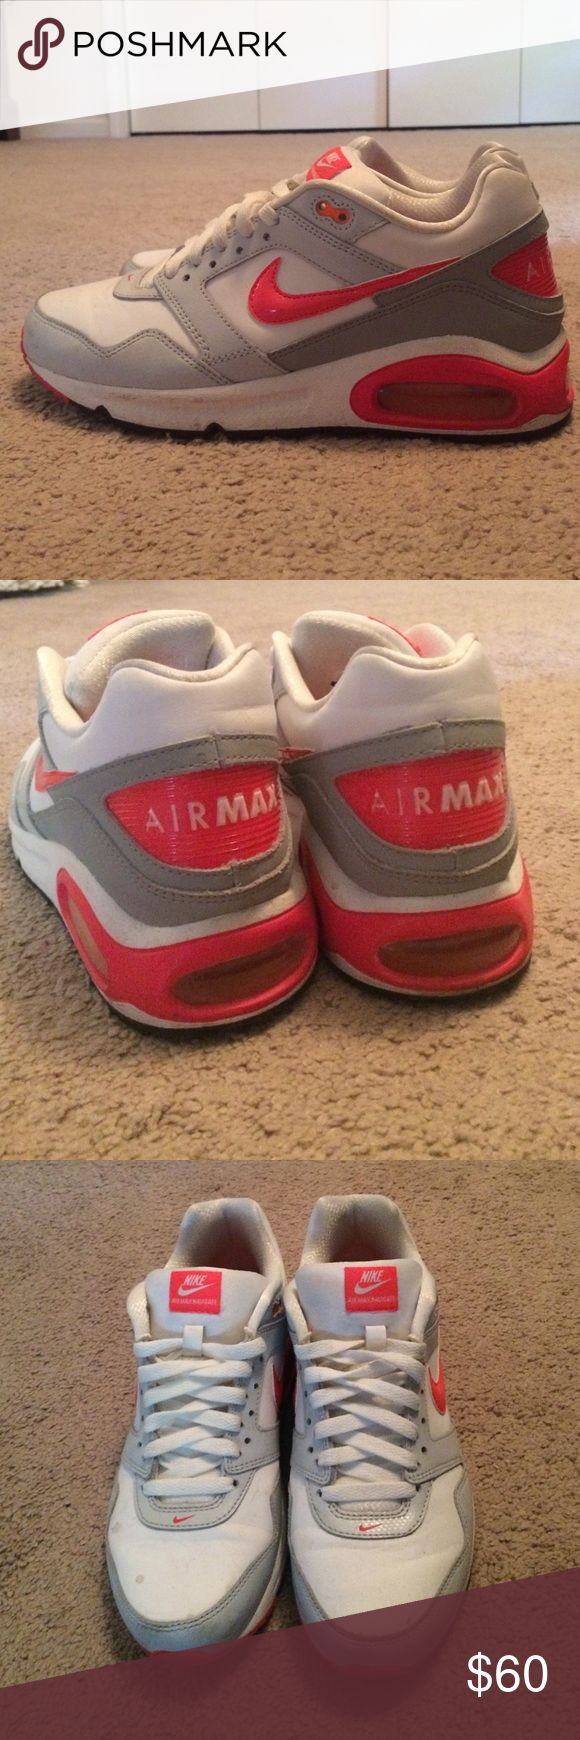 Nike air max sneakers. Size 6.5Y Boys. Fit size 8 Bought these size 6.5Y boys air max sneakers for myself. I wear a women's size 8 and they fit great. Wore a few times. Nike Shoes Sneakers